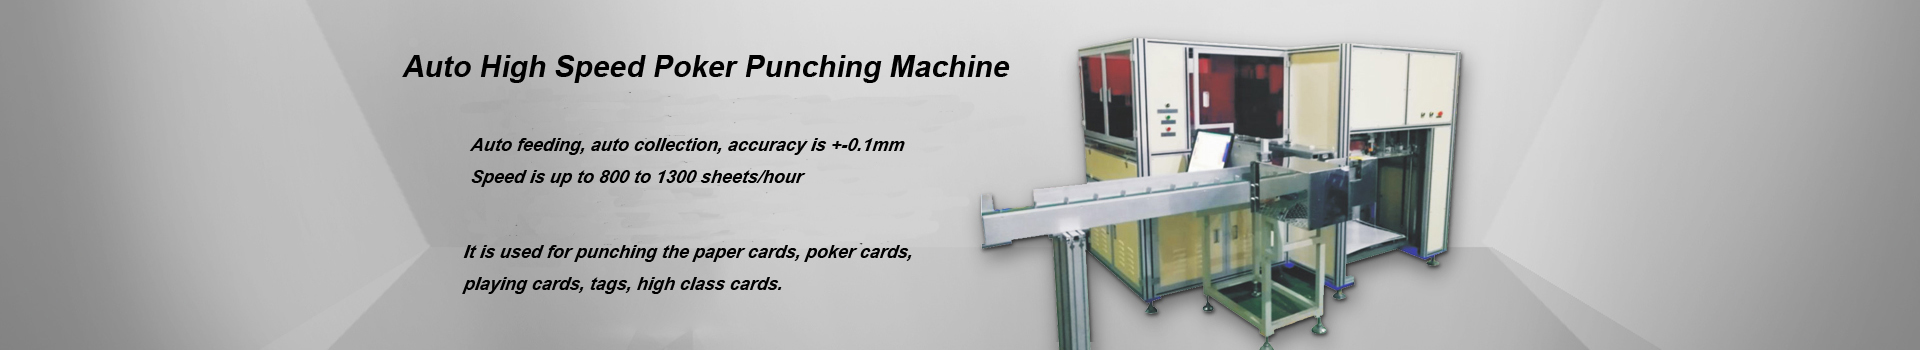 Auto Poker Punching Machine